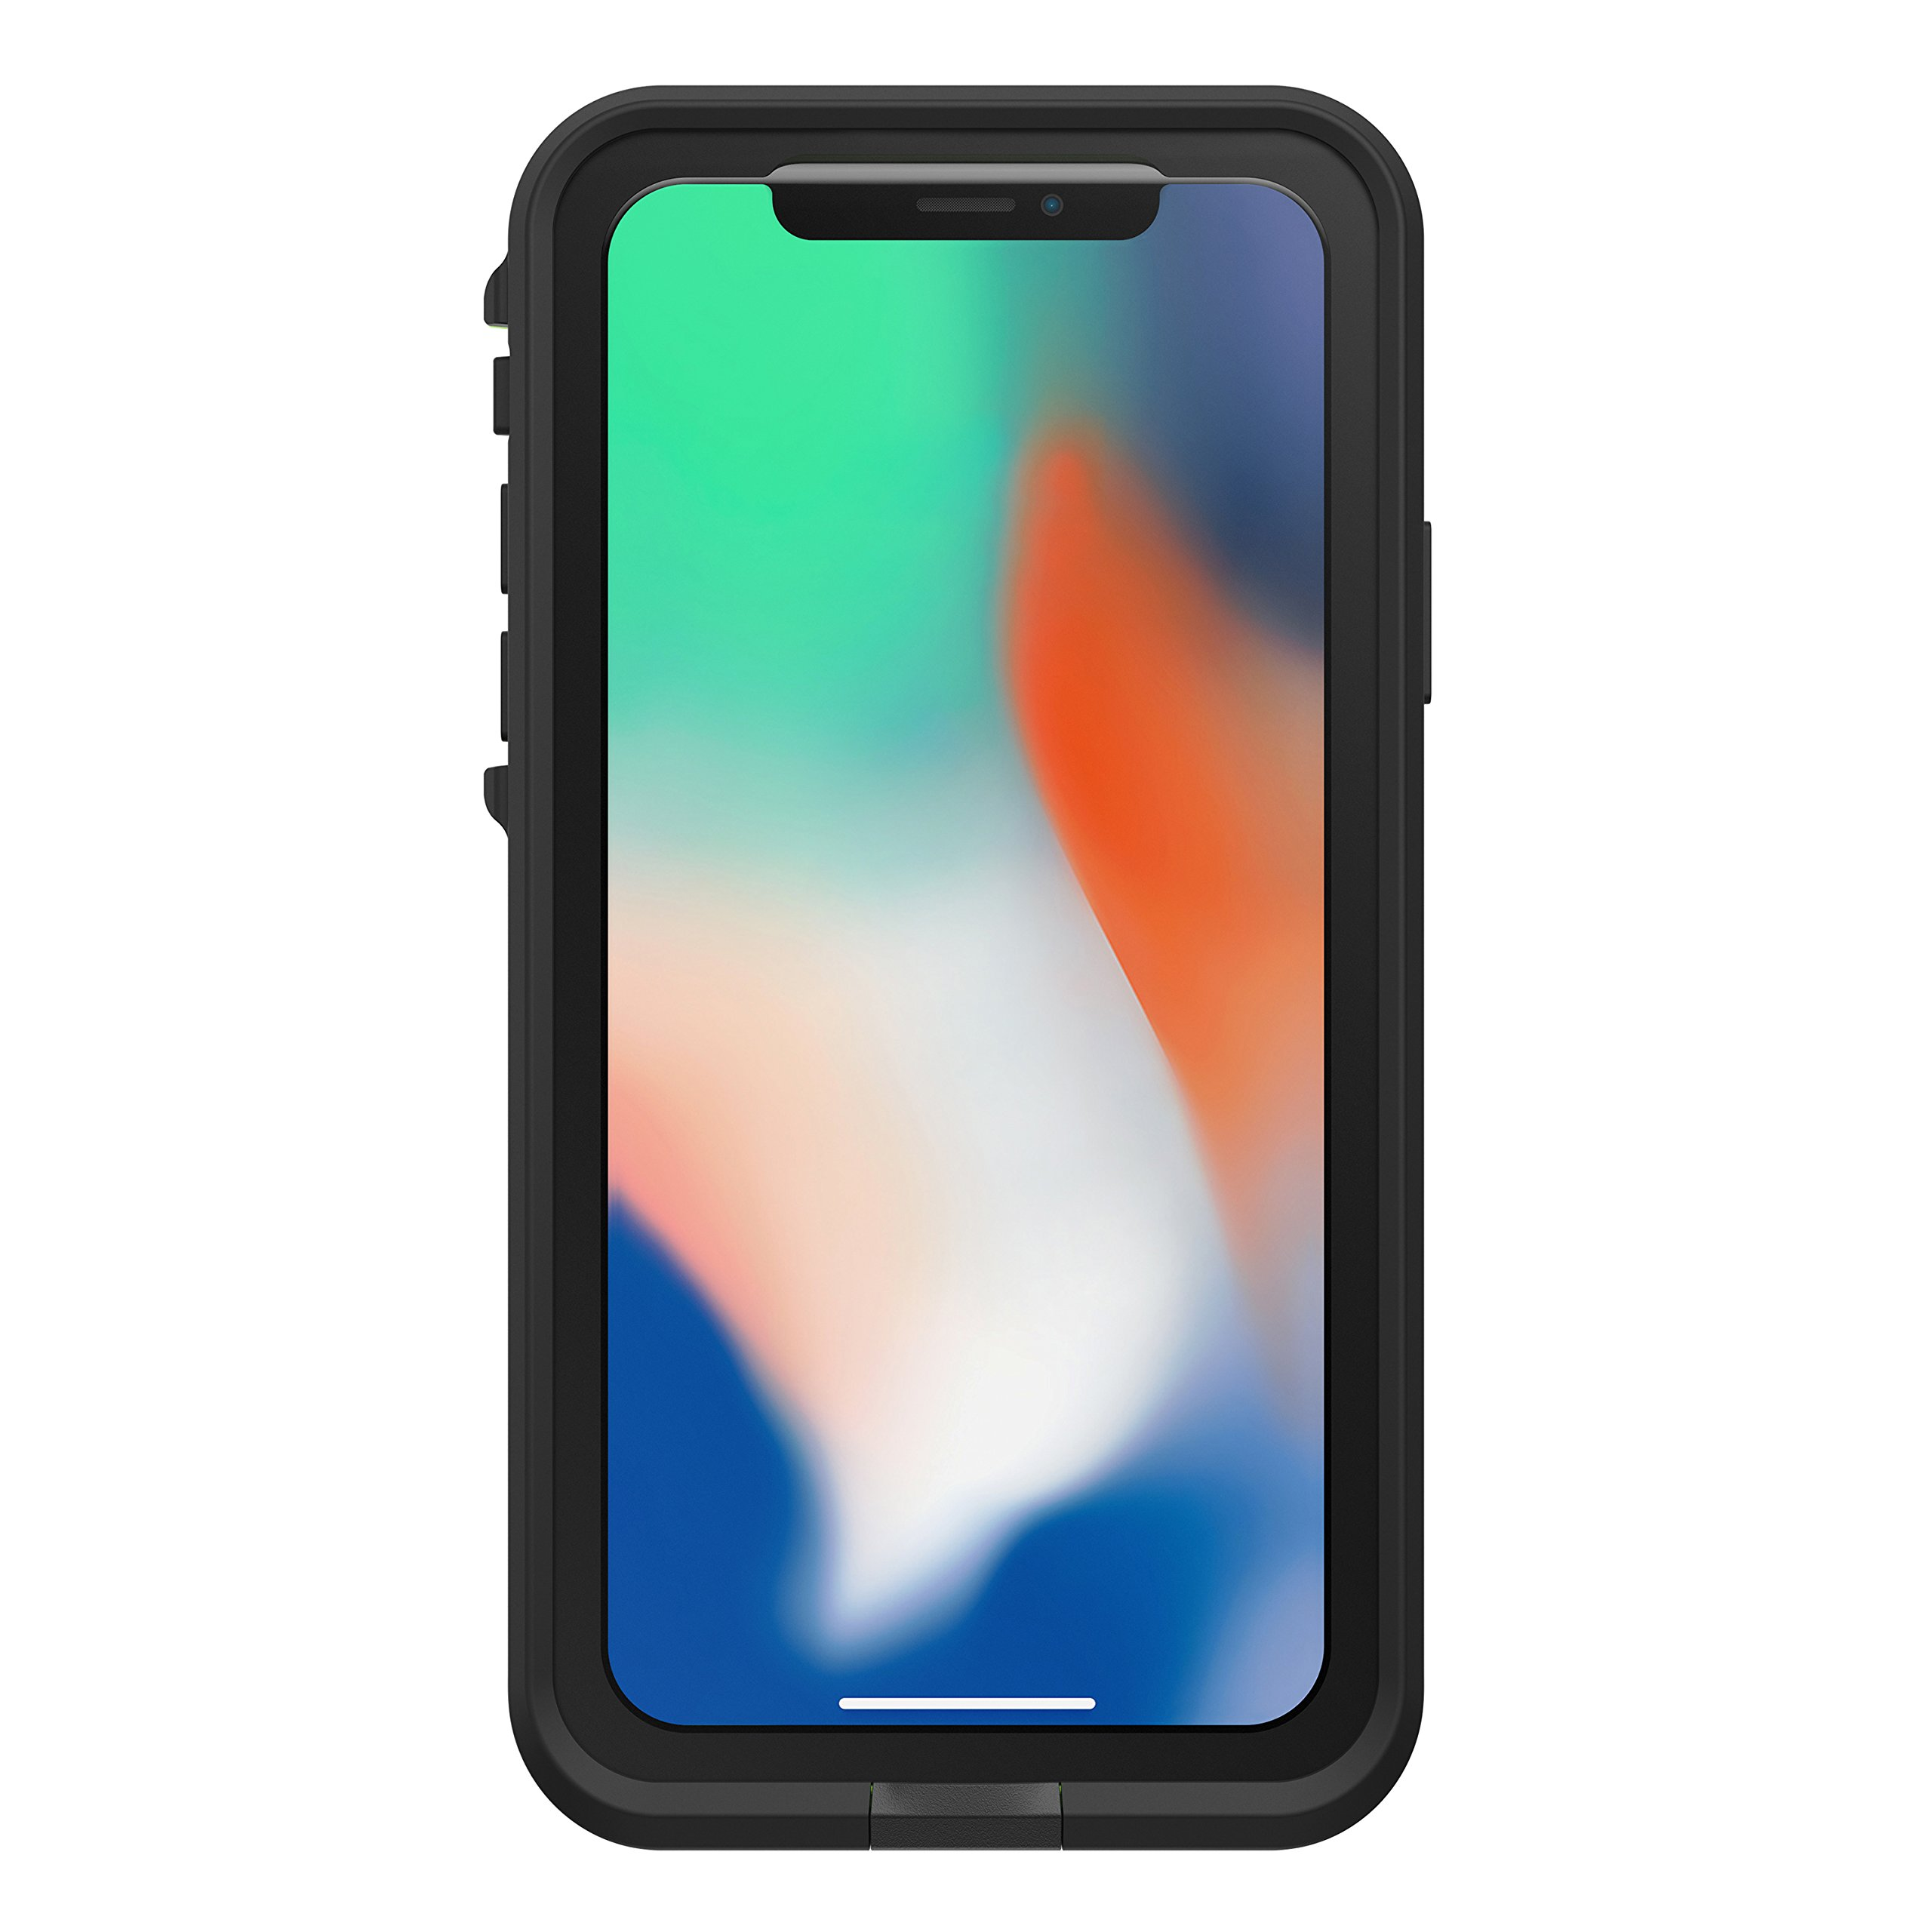 Lifeproof FRĒ SERIES Waterproof Case for iPhone X (ONLY) - Retail Packaging - NIGHT LITE (BLACK/LIME) by LifeProof (Image #4)